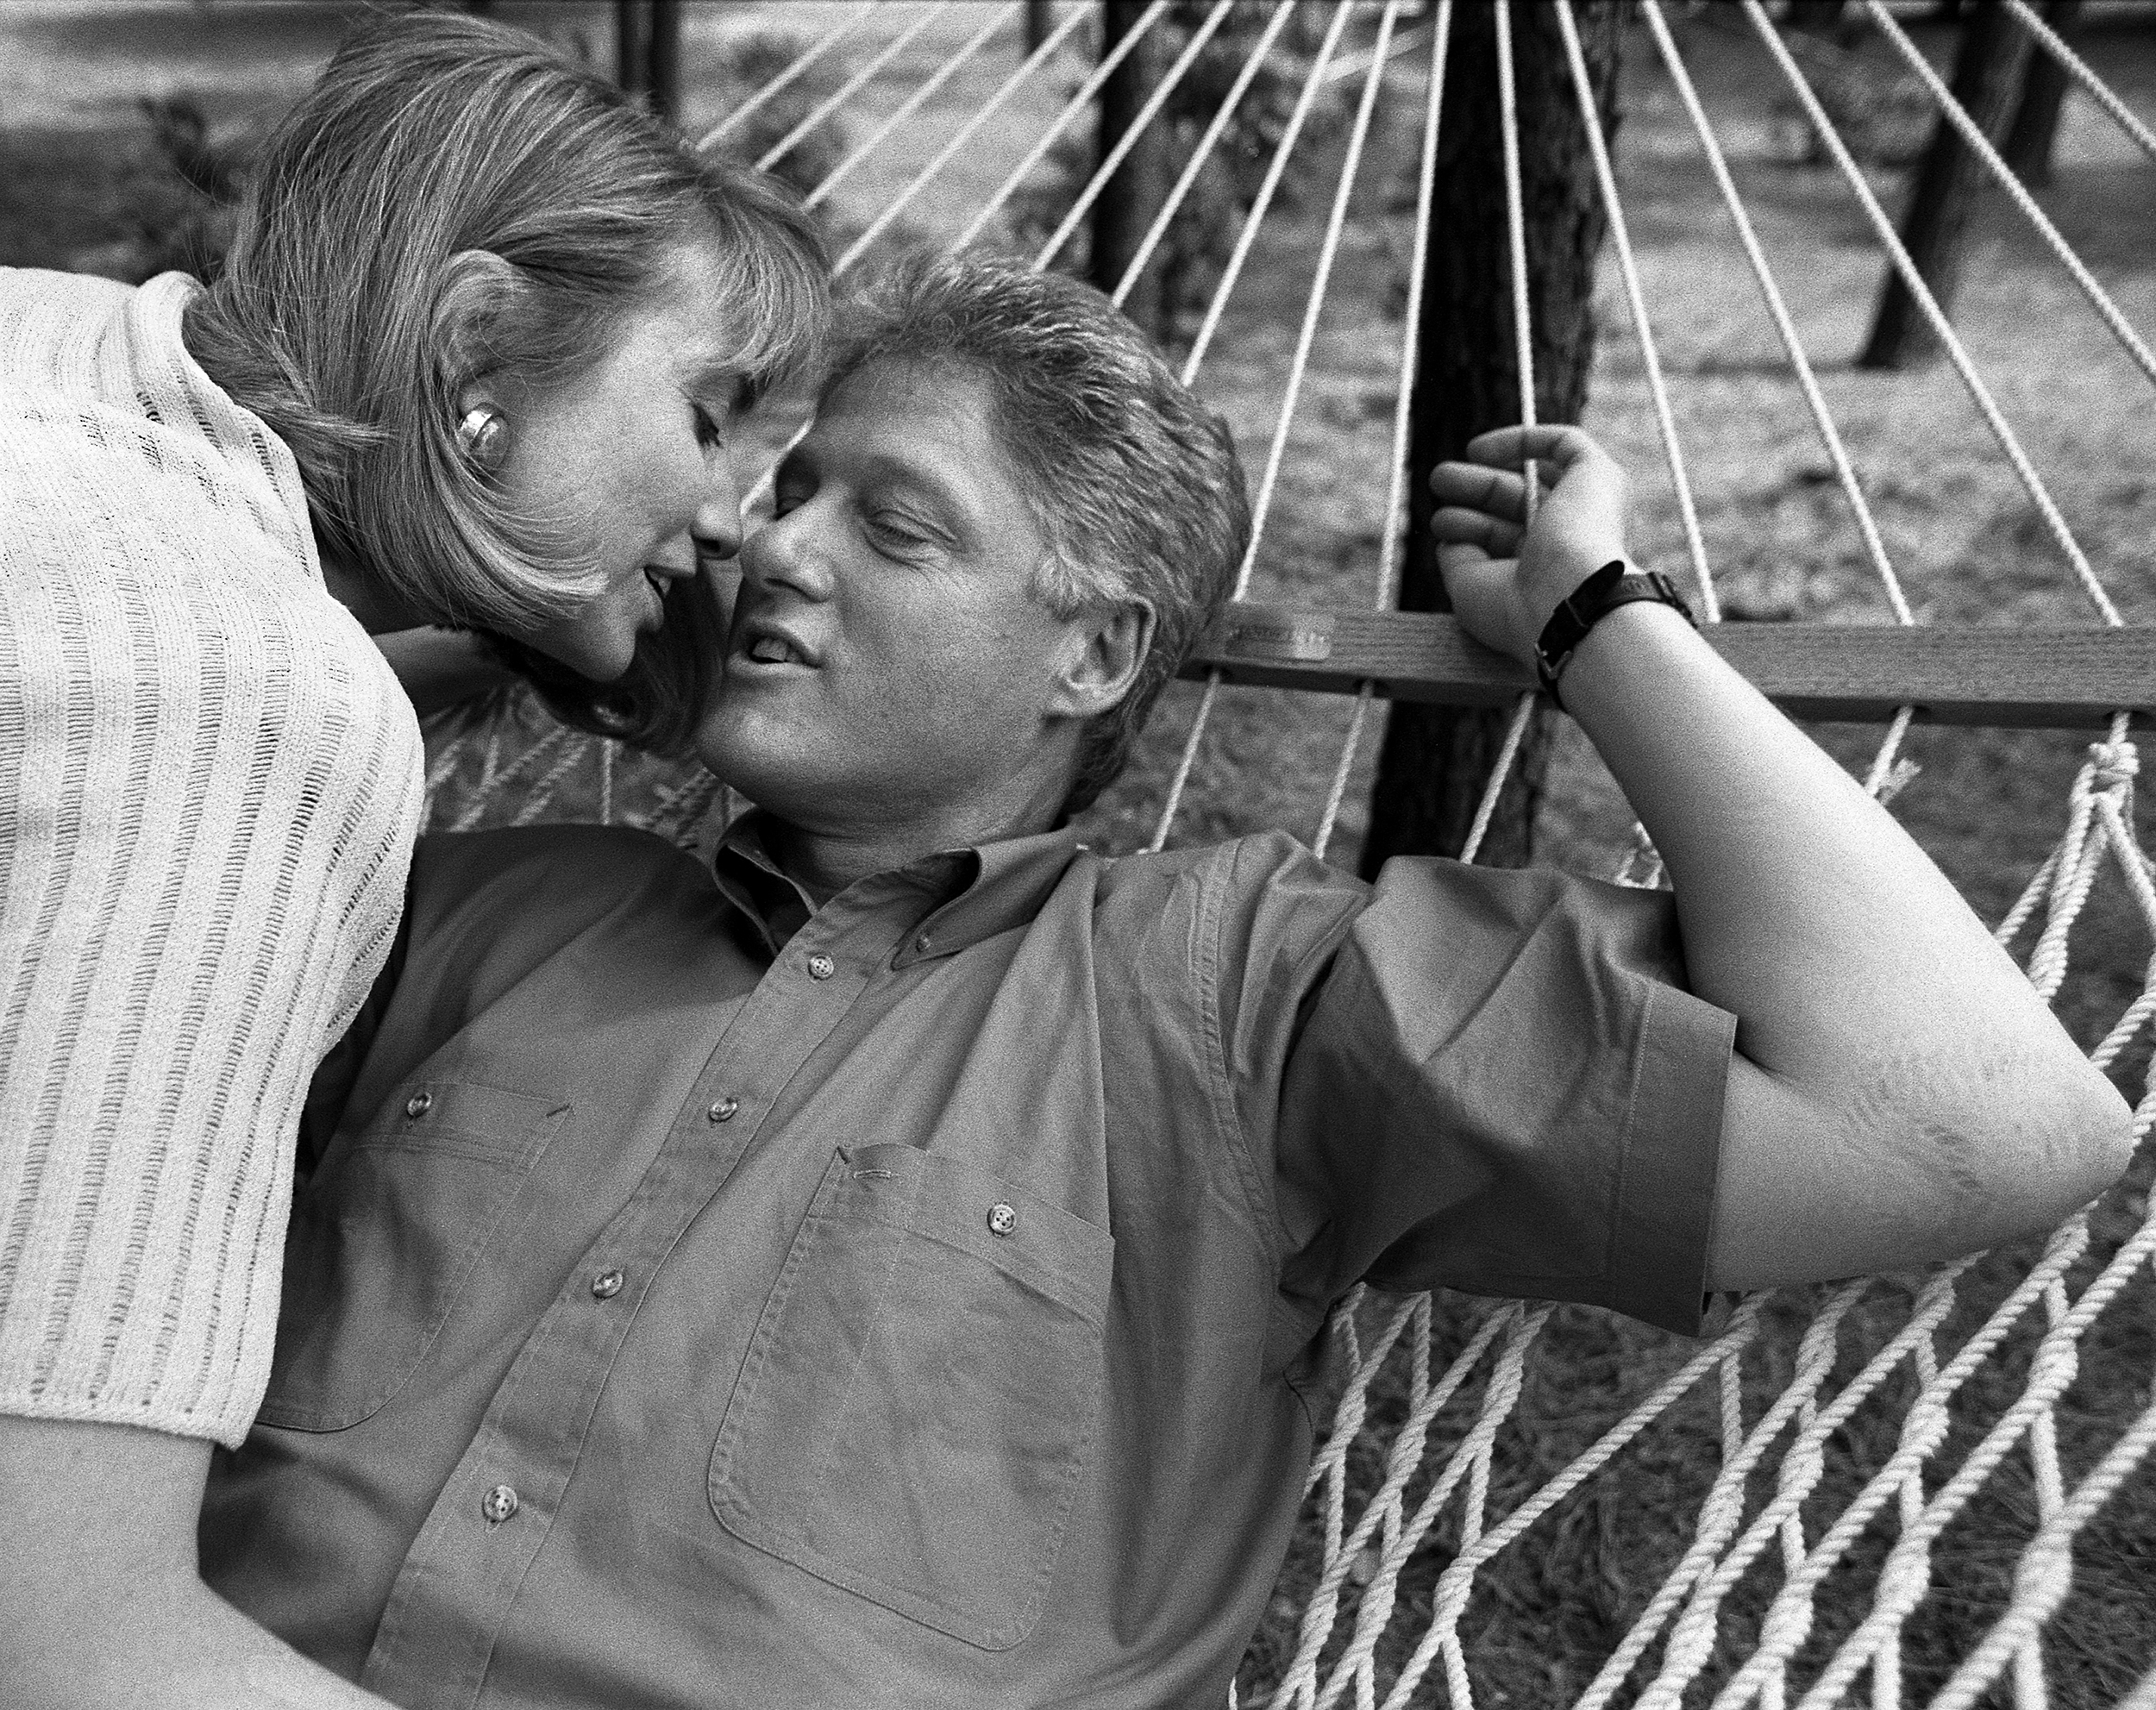 Bill and Hillary Clinton in Little Rock right after he announced his first presidential run in 1992.